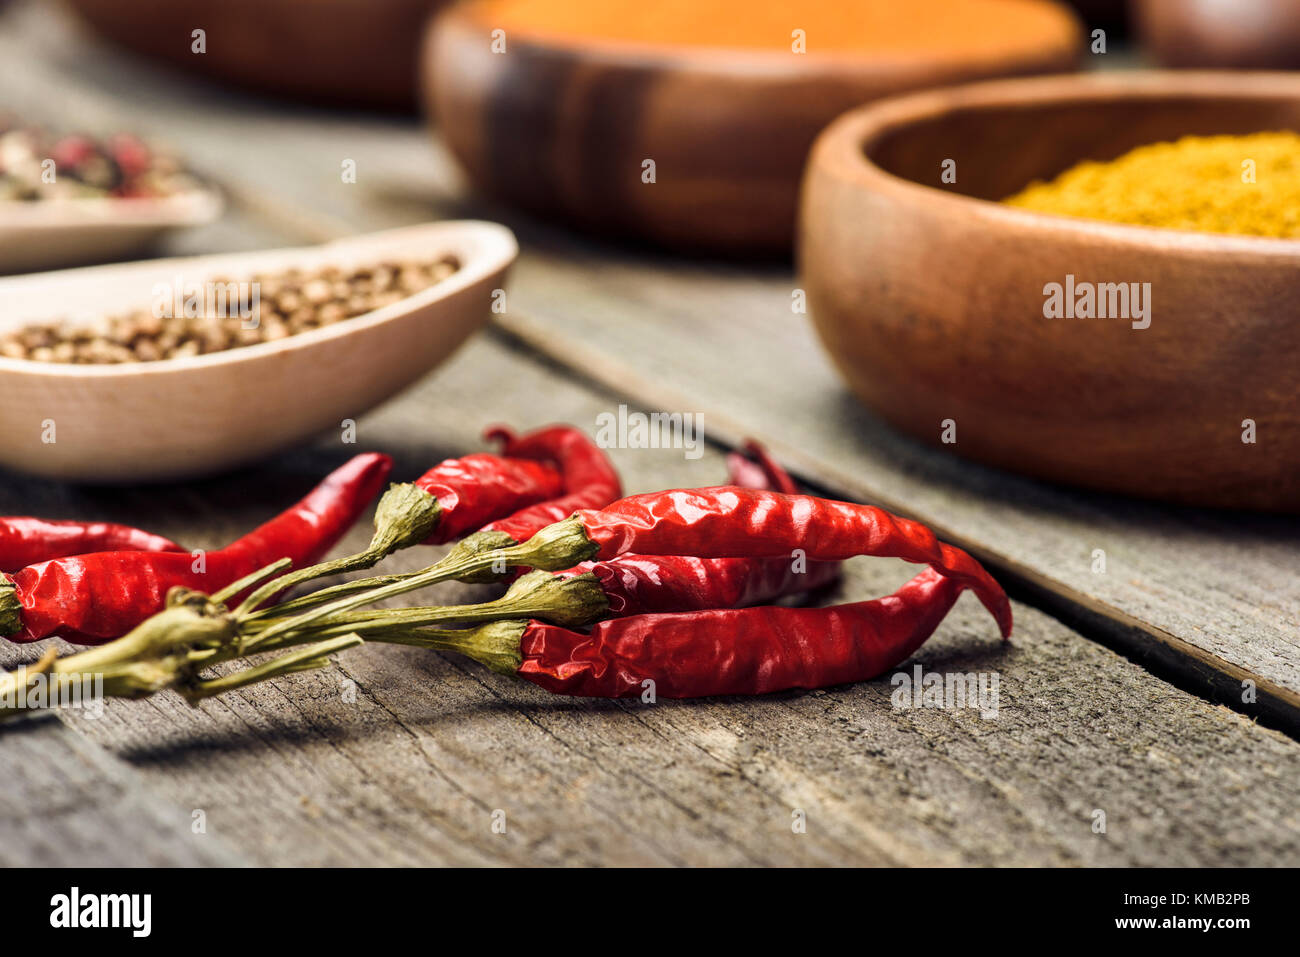 Chili peppers - Stock Image